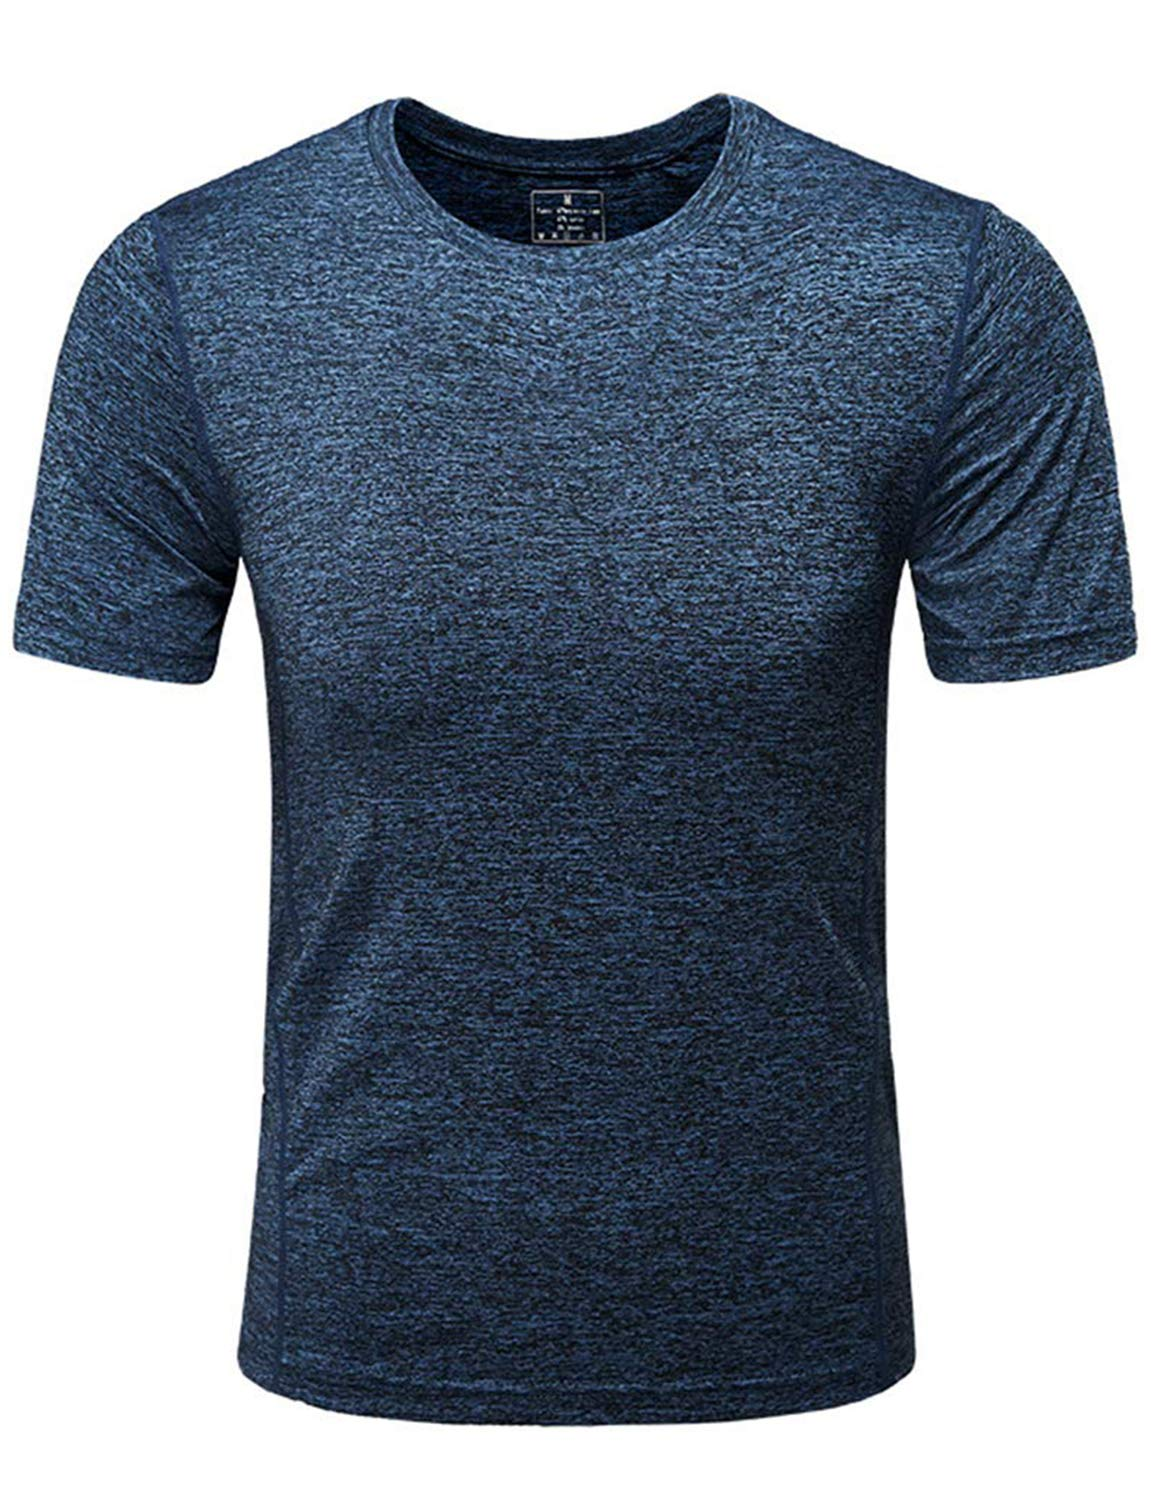 GEEK LIGHTING Men's Short Sleeve Crewneck T-Shirt, Soft Breathable Mesh Tee (Dark Blue, XX-Large)